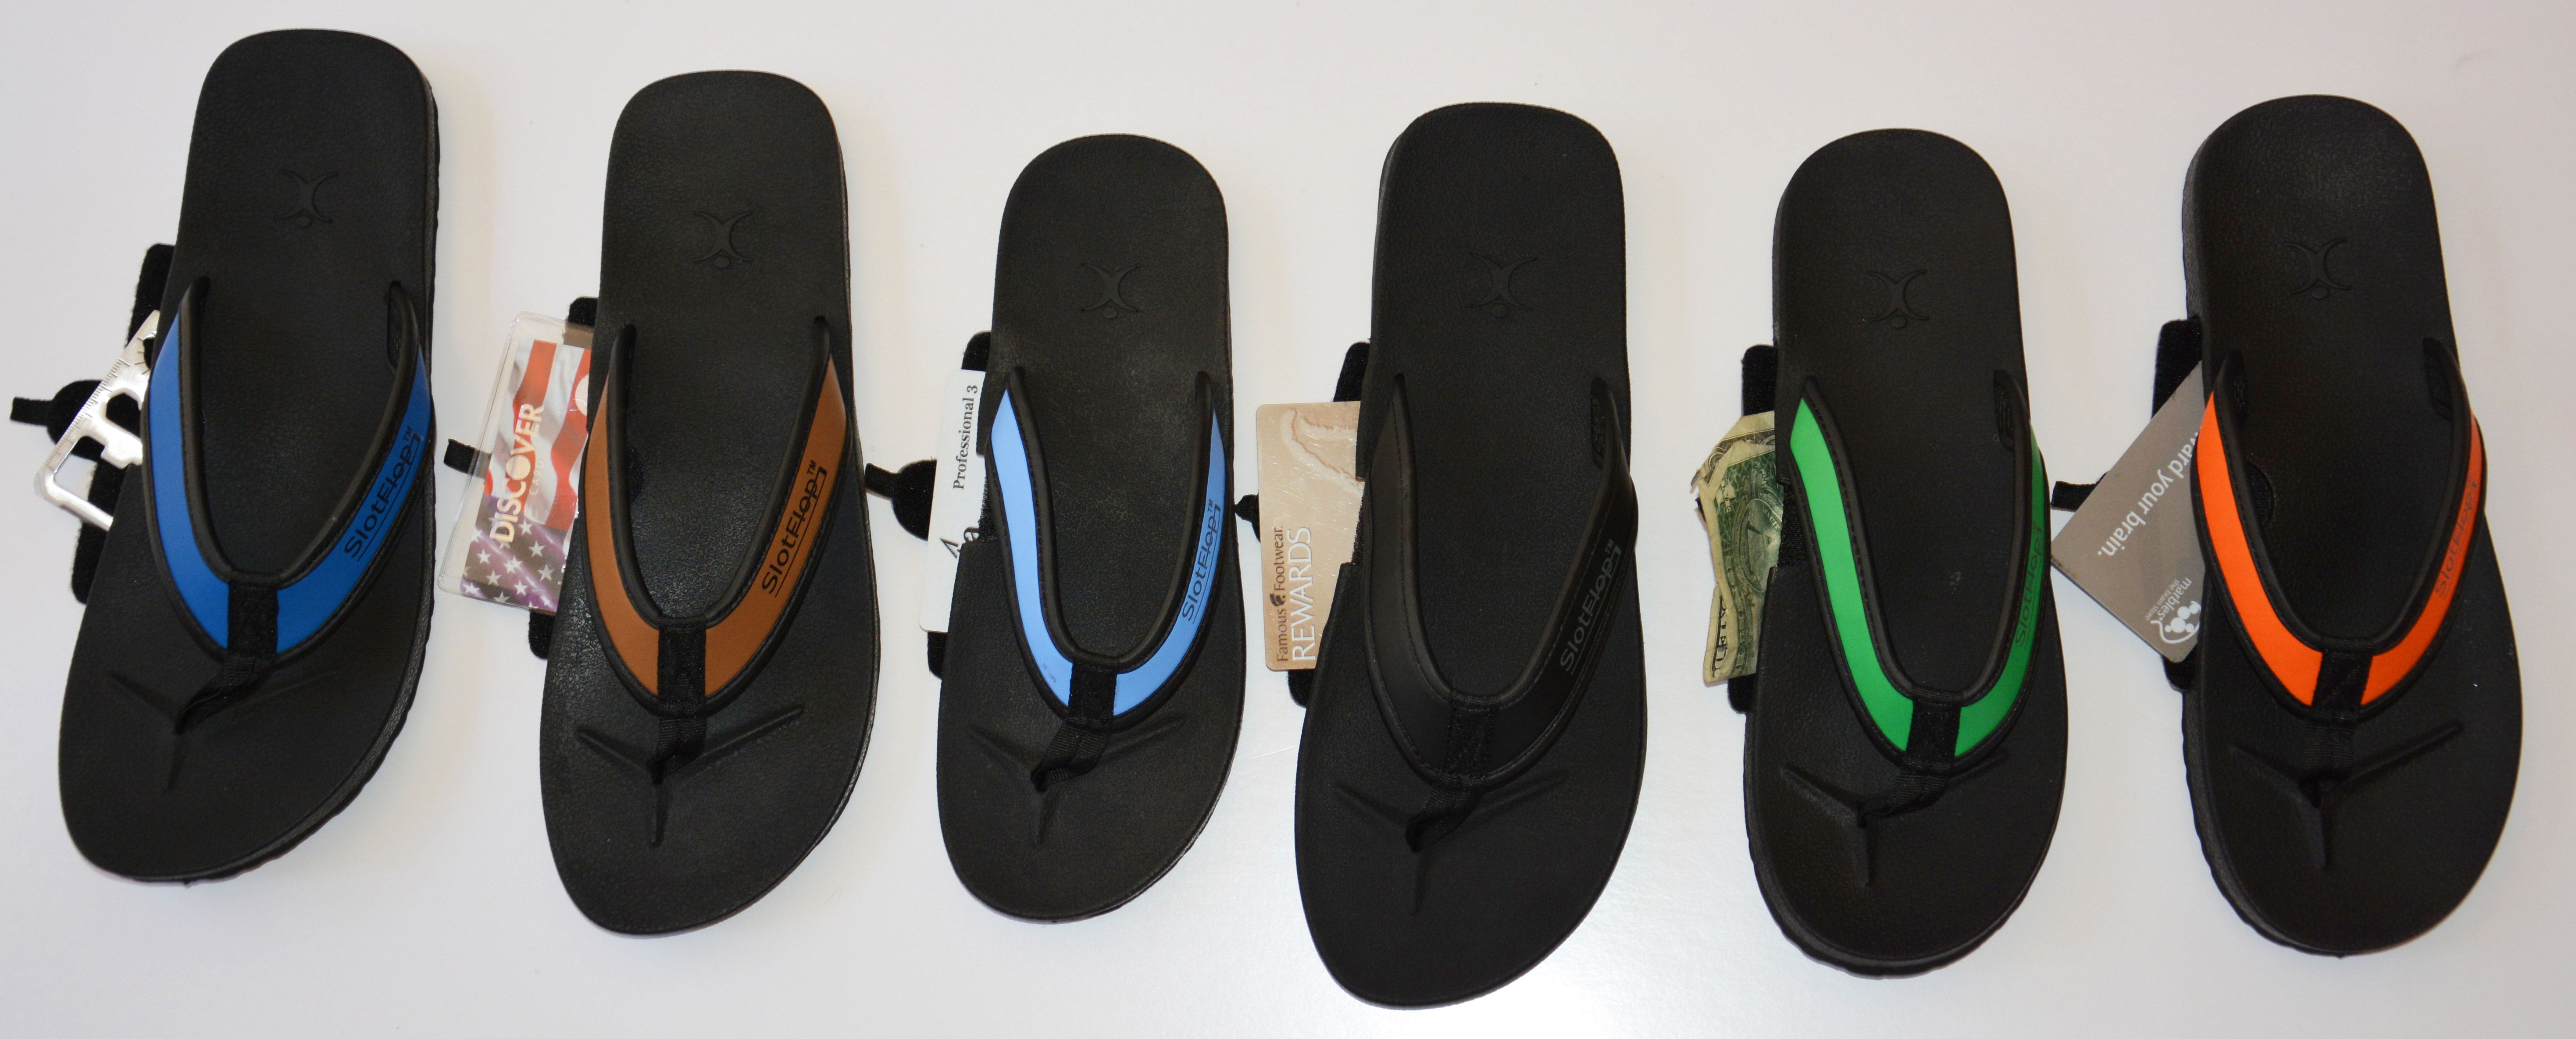 Keep your essentials safe & (literally) underfoot. Enter to win today's giveaway, Slot Flops! #GiftOfTravel